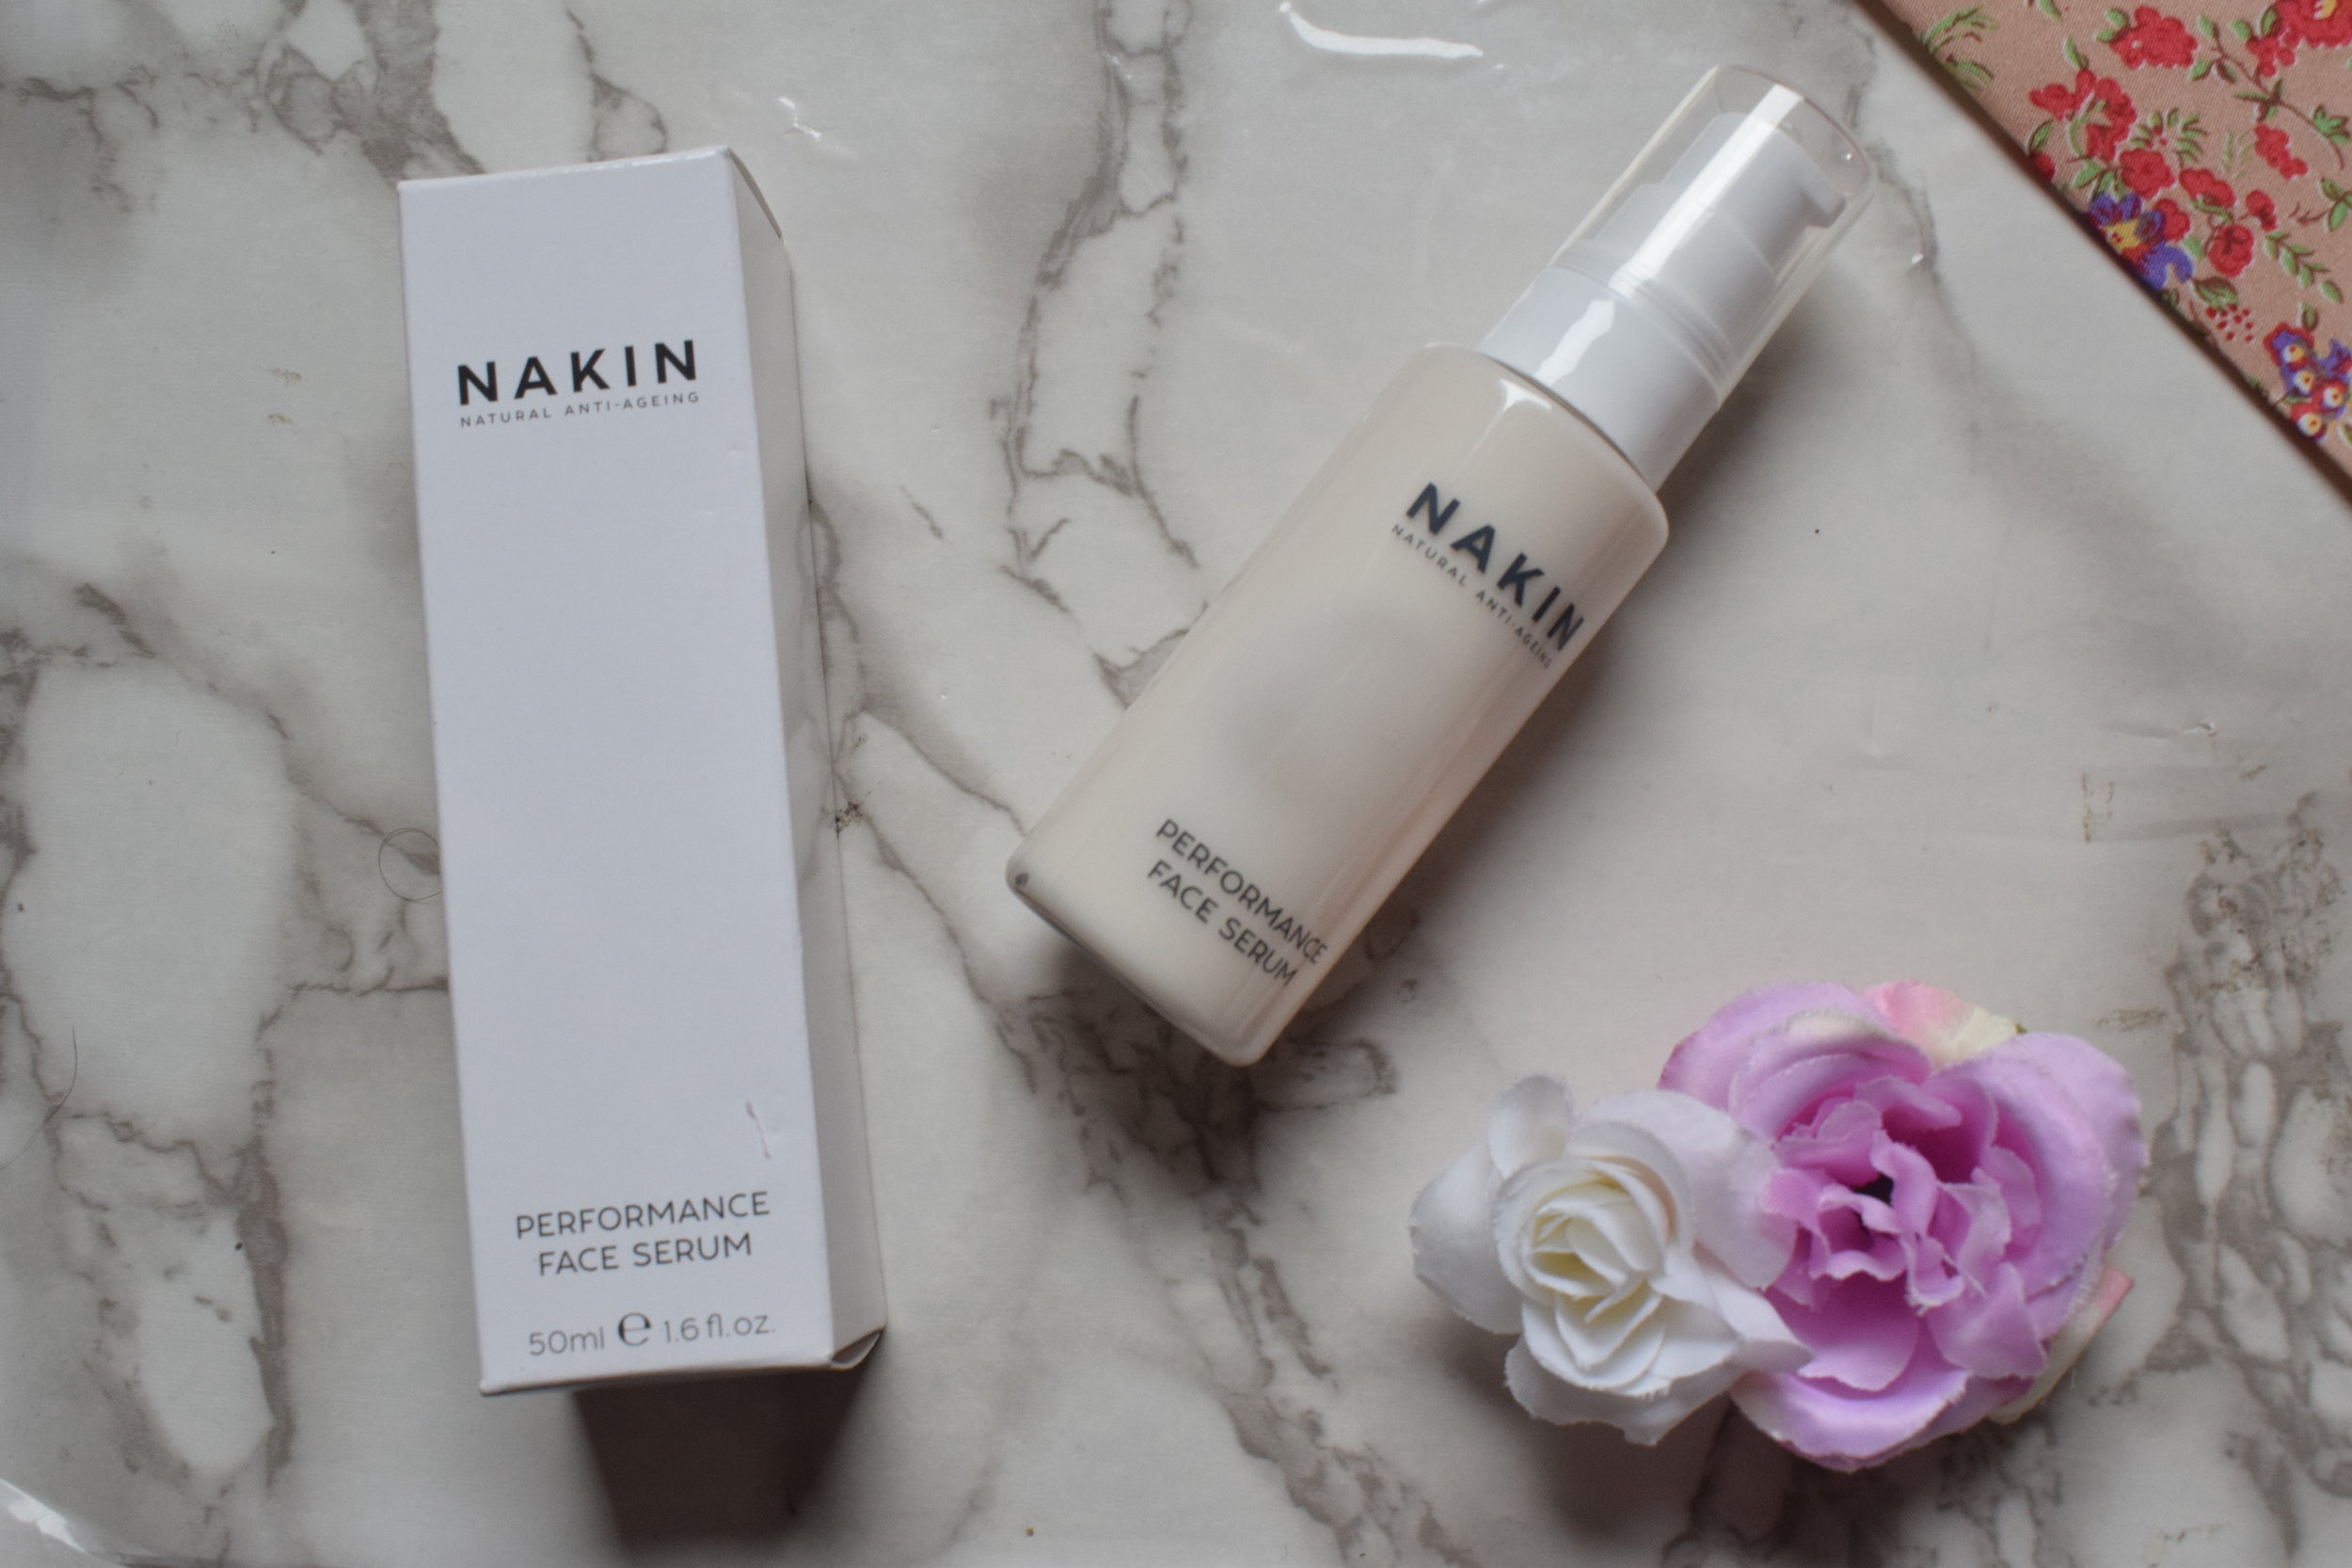 Nakin Performance Face Serum Me Becoming Mum's Christmas Stocking Fillers for Her